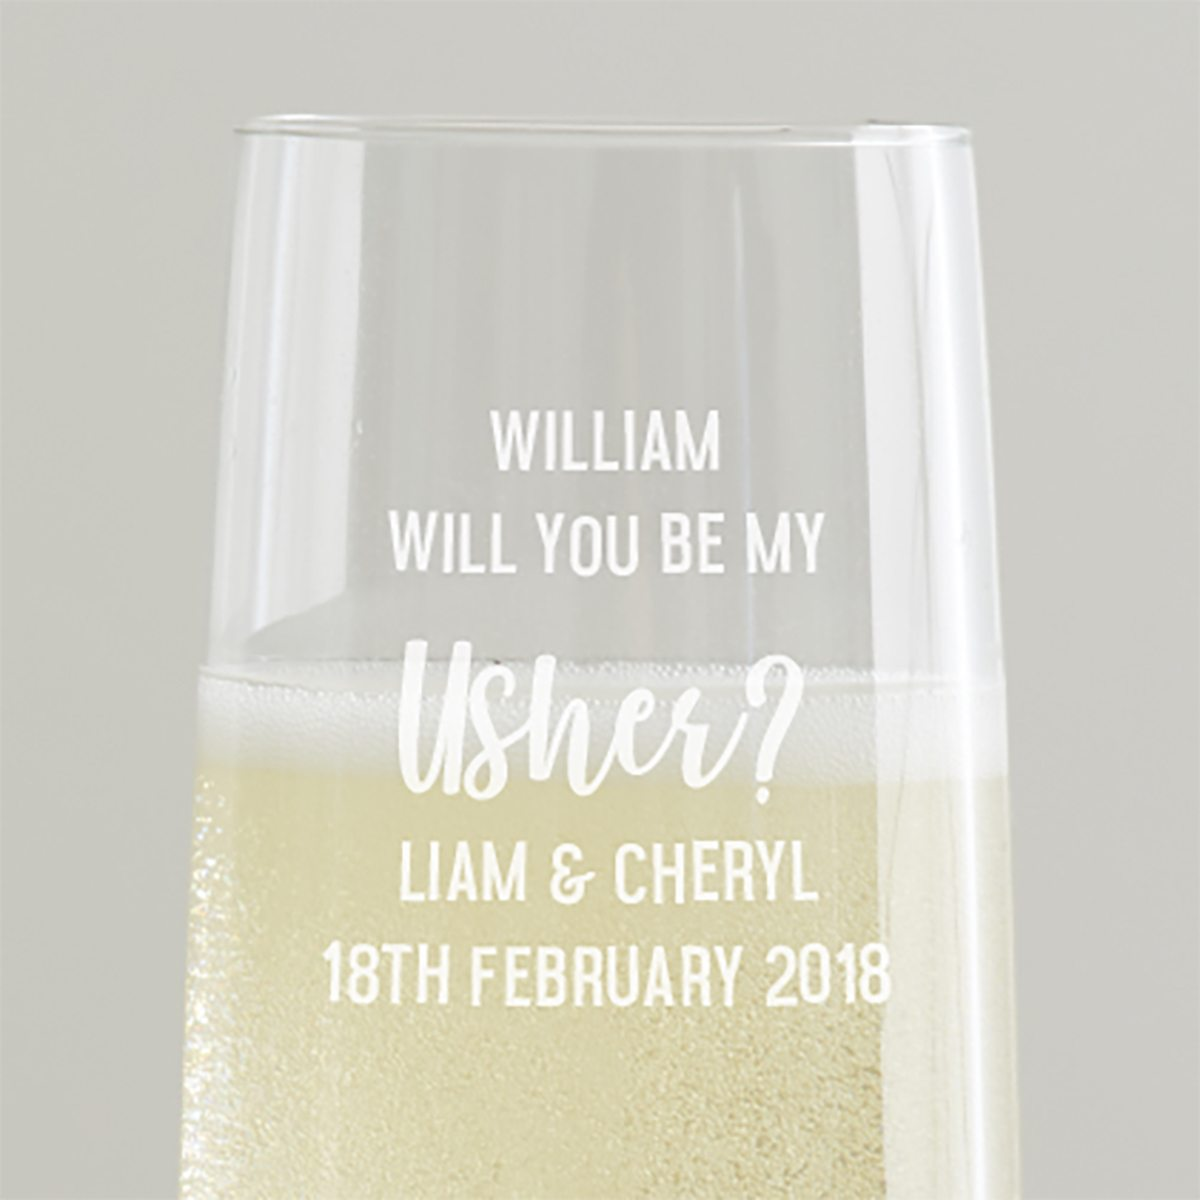 Personalised 'Will You Be My Usher' Champagne Flute